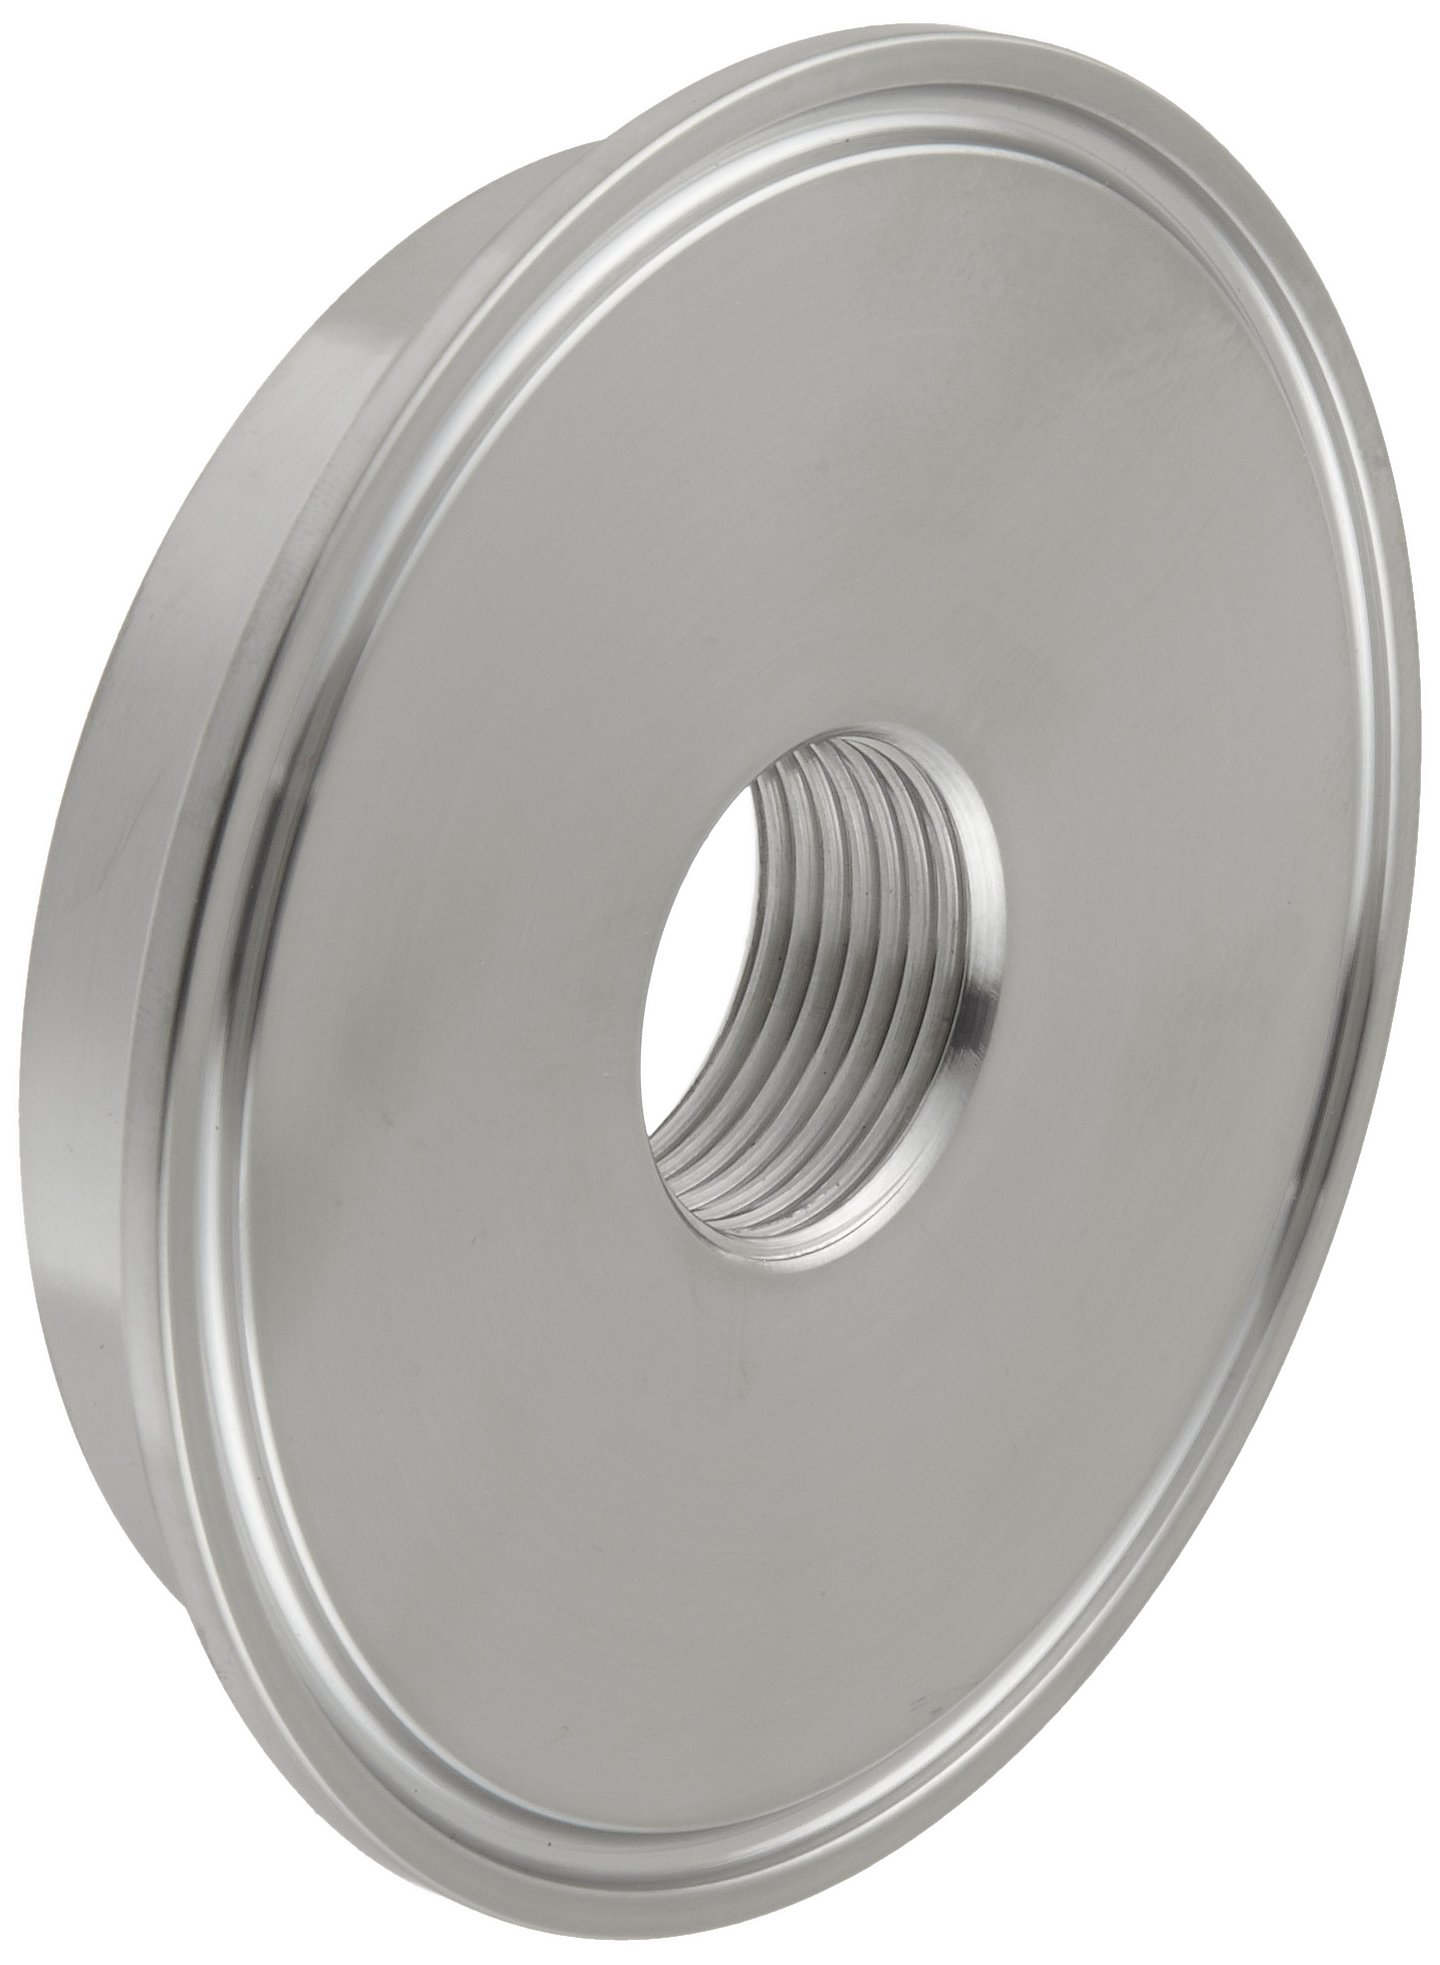 Dixon B23BMP-G300 Stainless Steel 304 Sanitary Fitting, Thermometer Cap, 3'' Tube OD x 3/4'' NPT Female